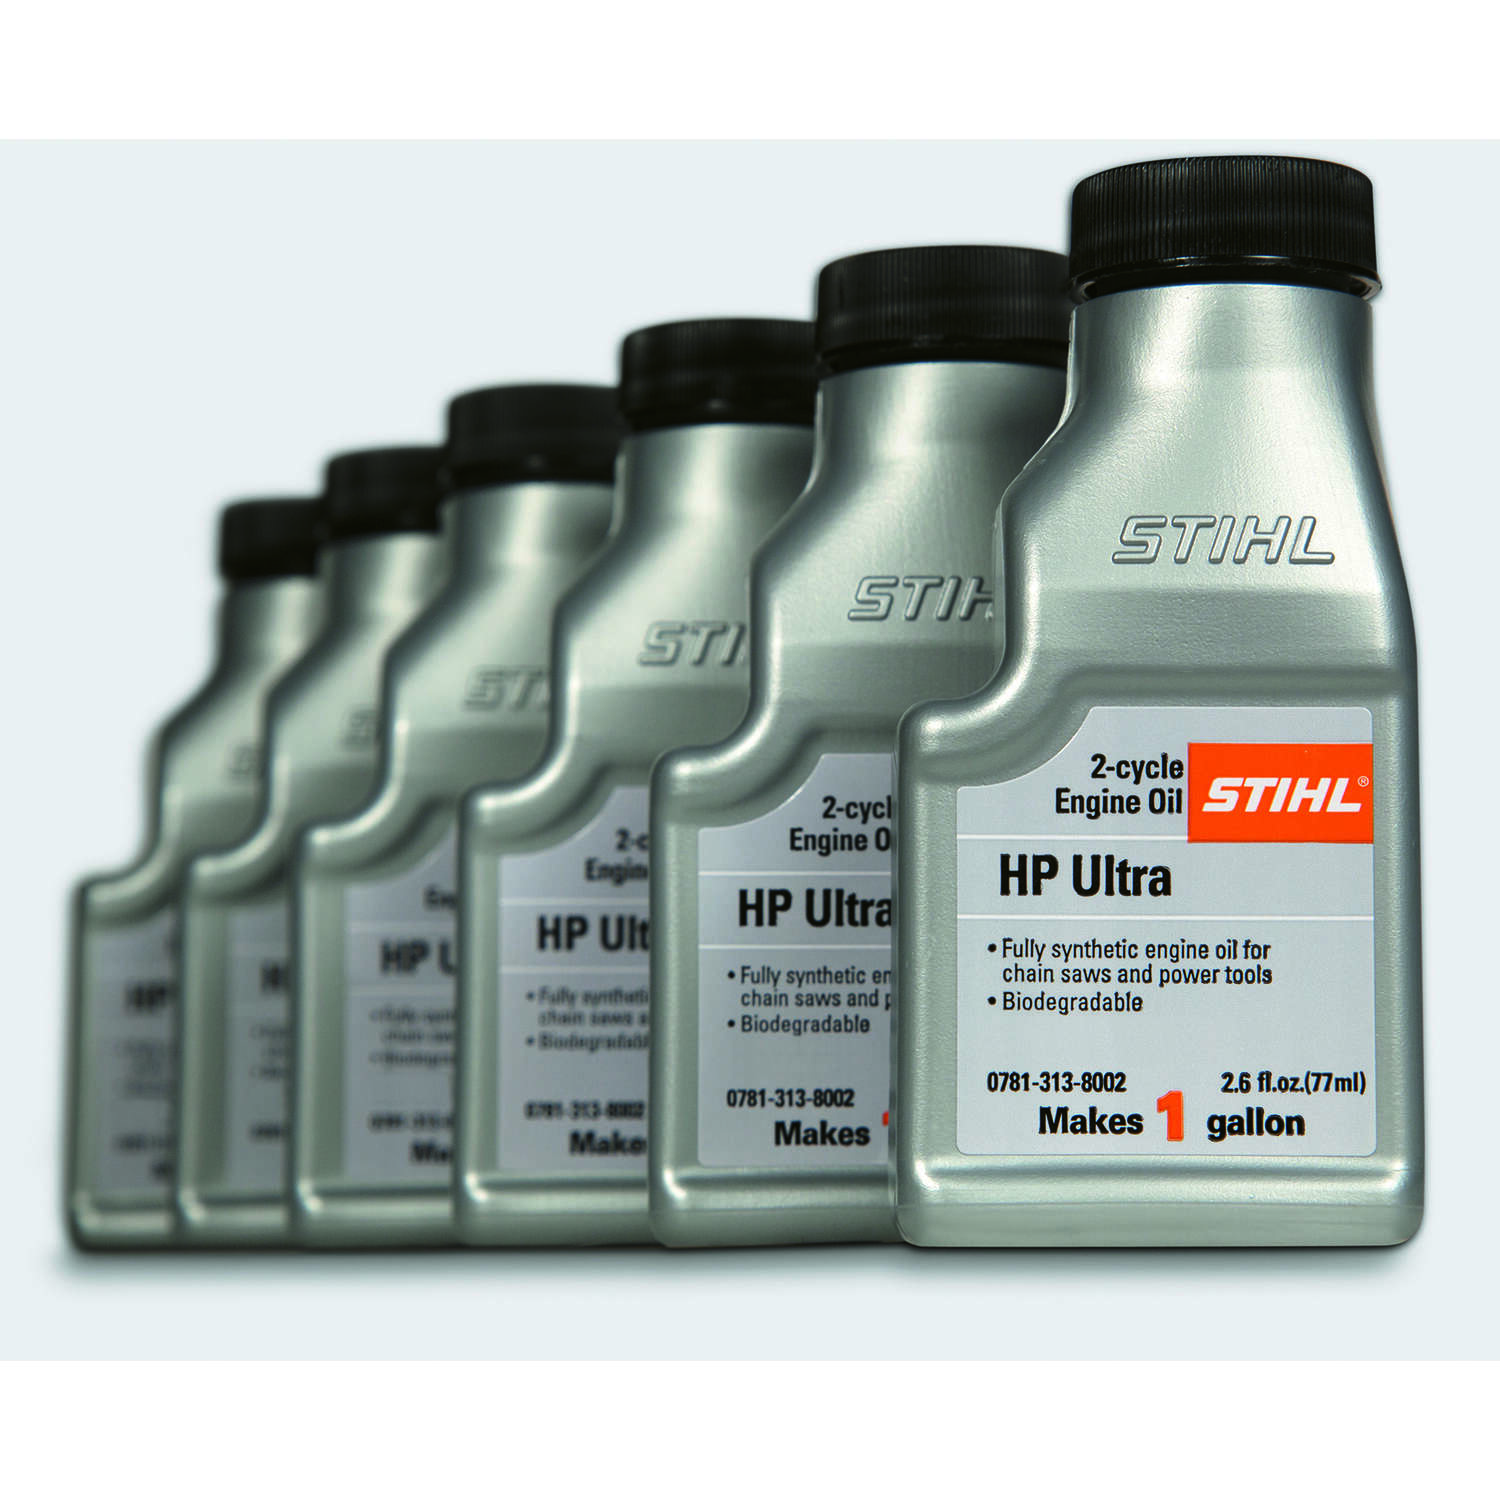 STIHL  HP Ultra  Engine Oil  2.6 oz. 6 pk